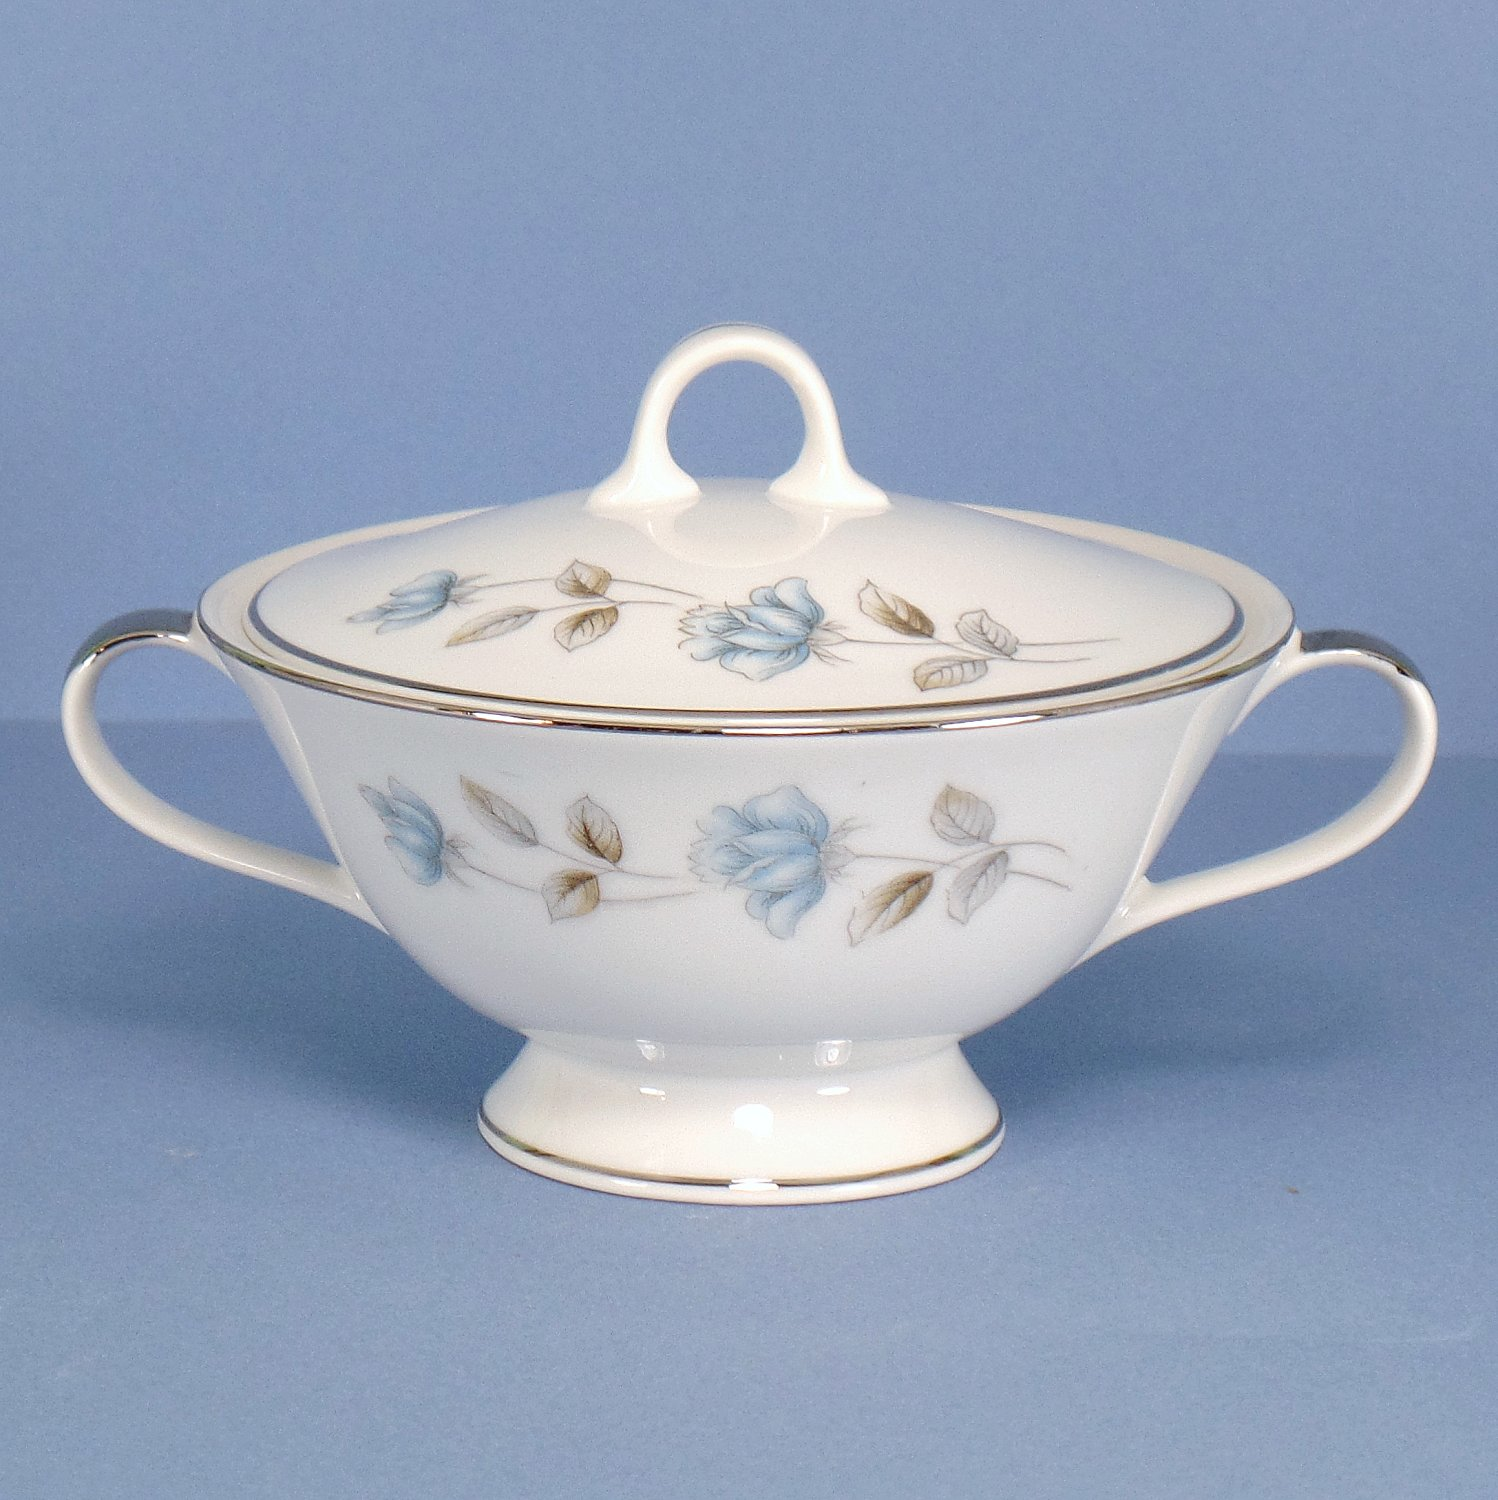 International Elegant Lady Sugar Bowl & Lid